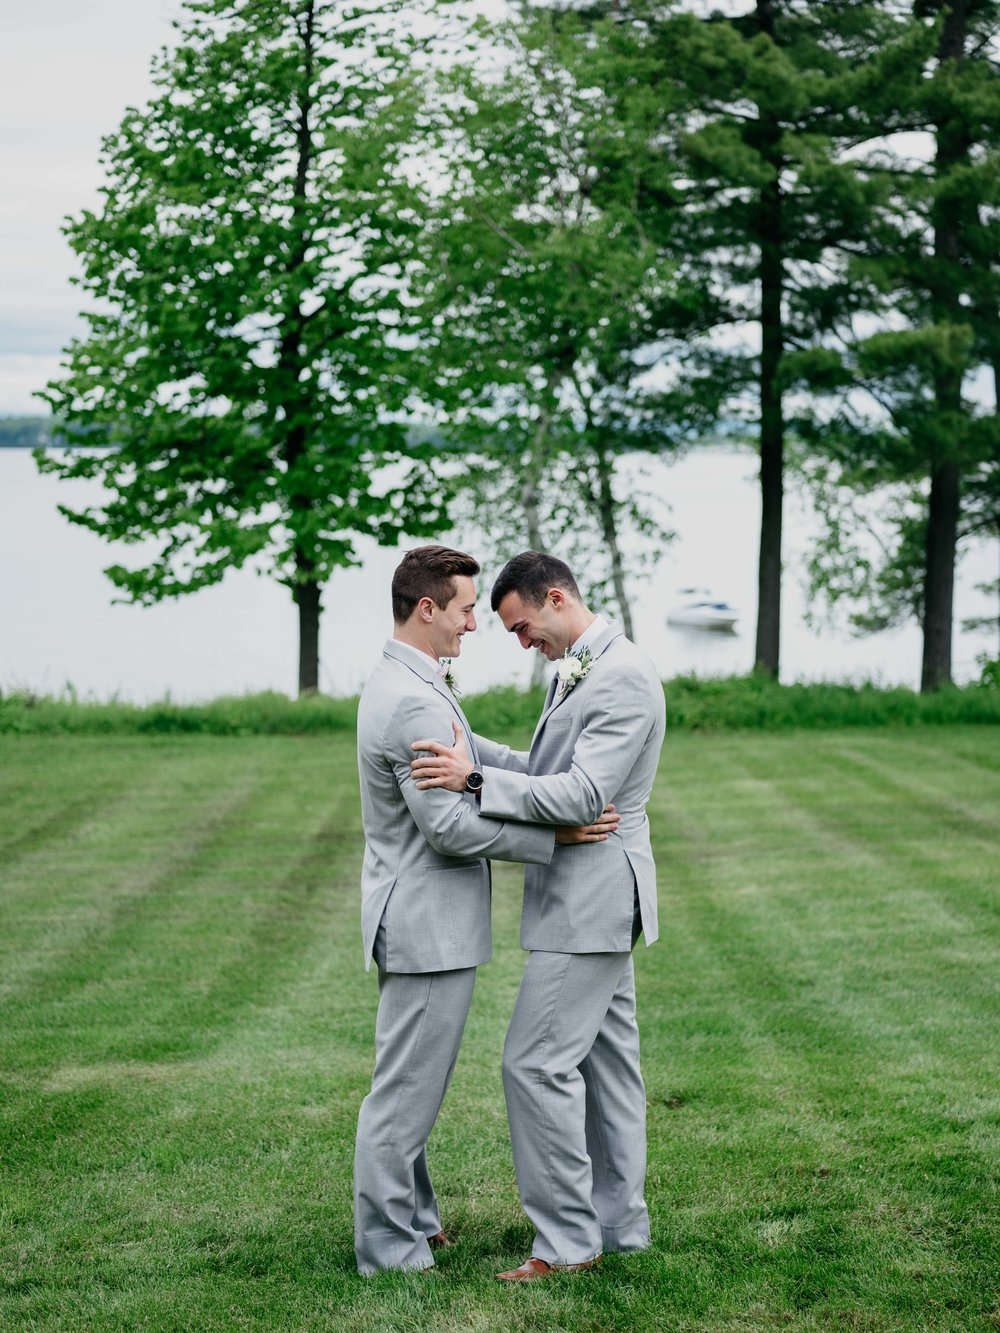 06032017-nick-evan-vermont-mountain-wedding-photographer-30.jpg